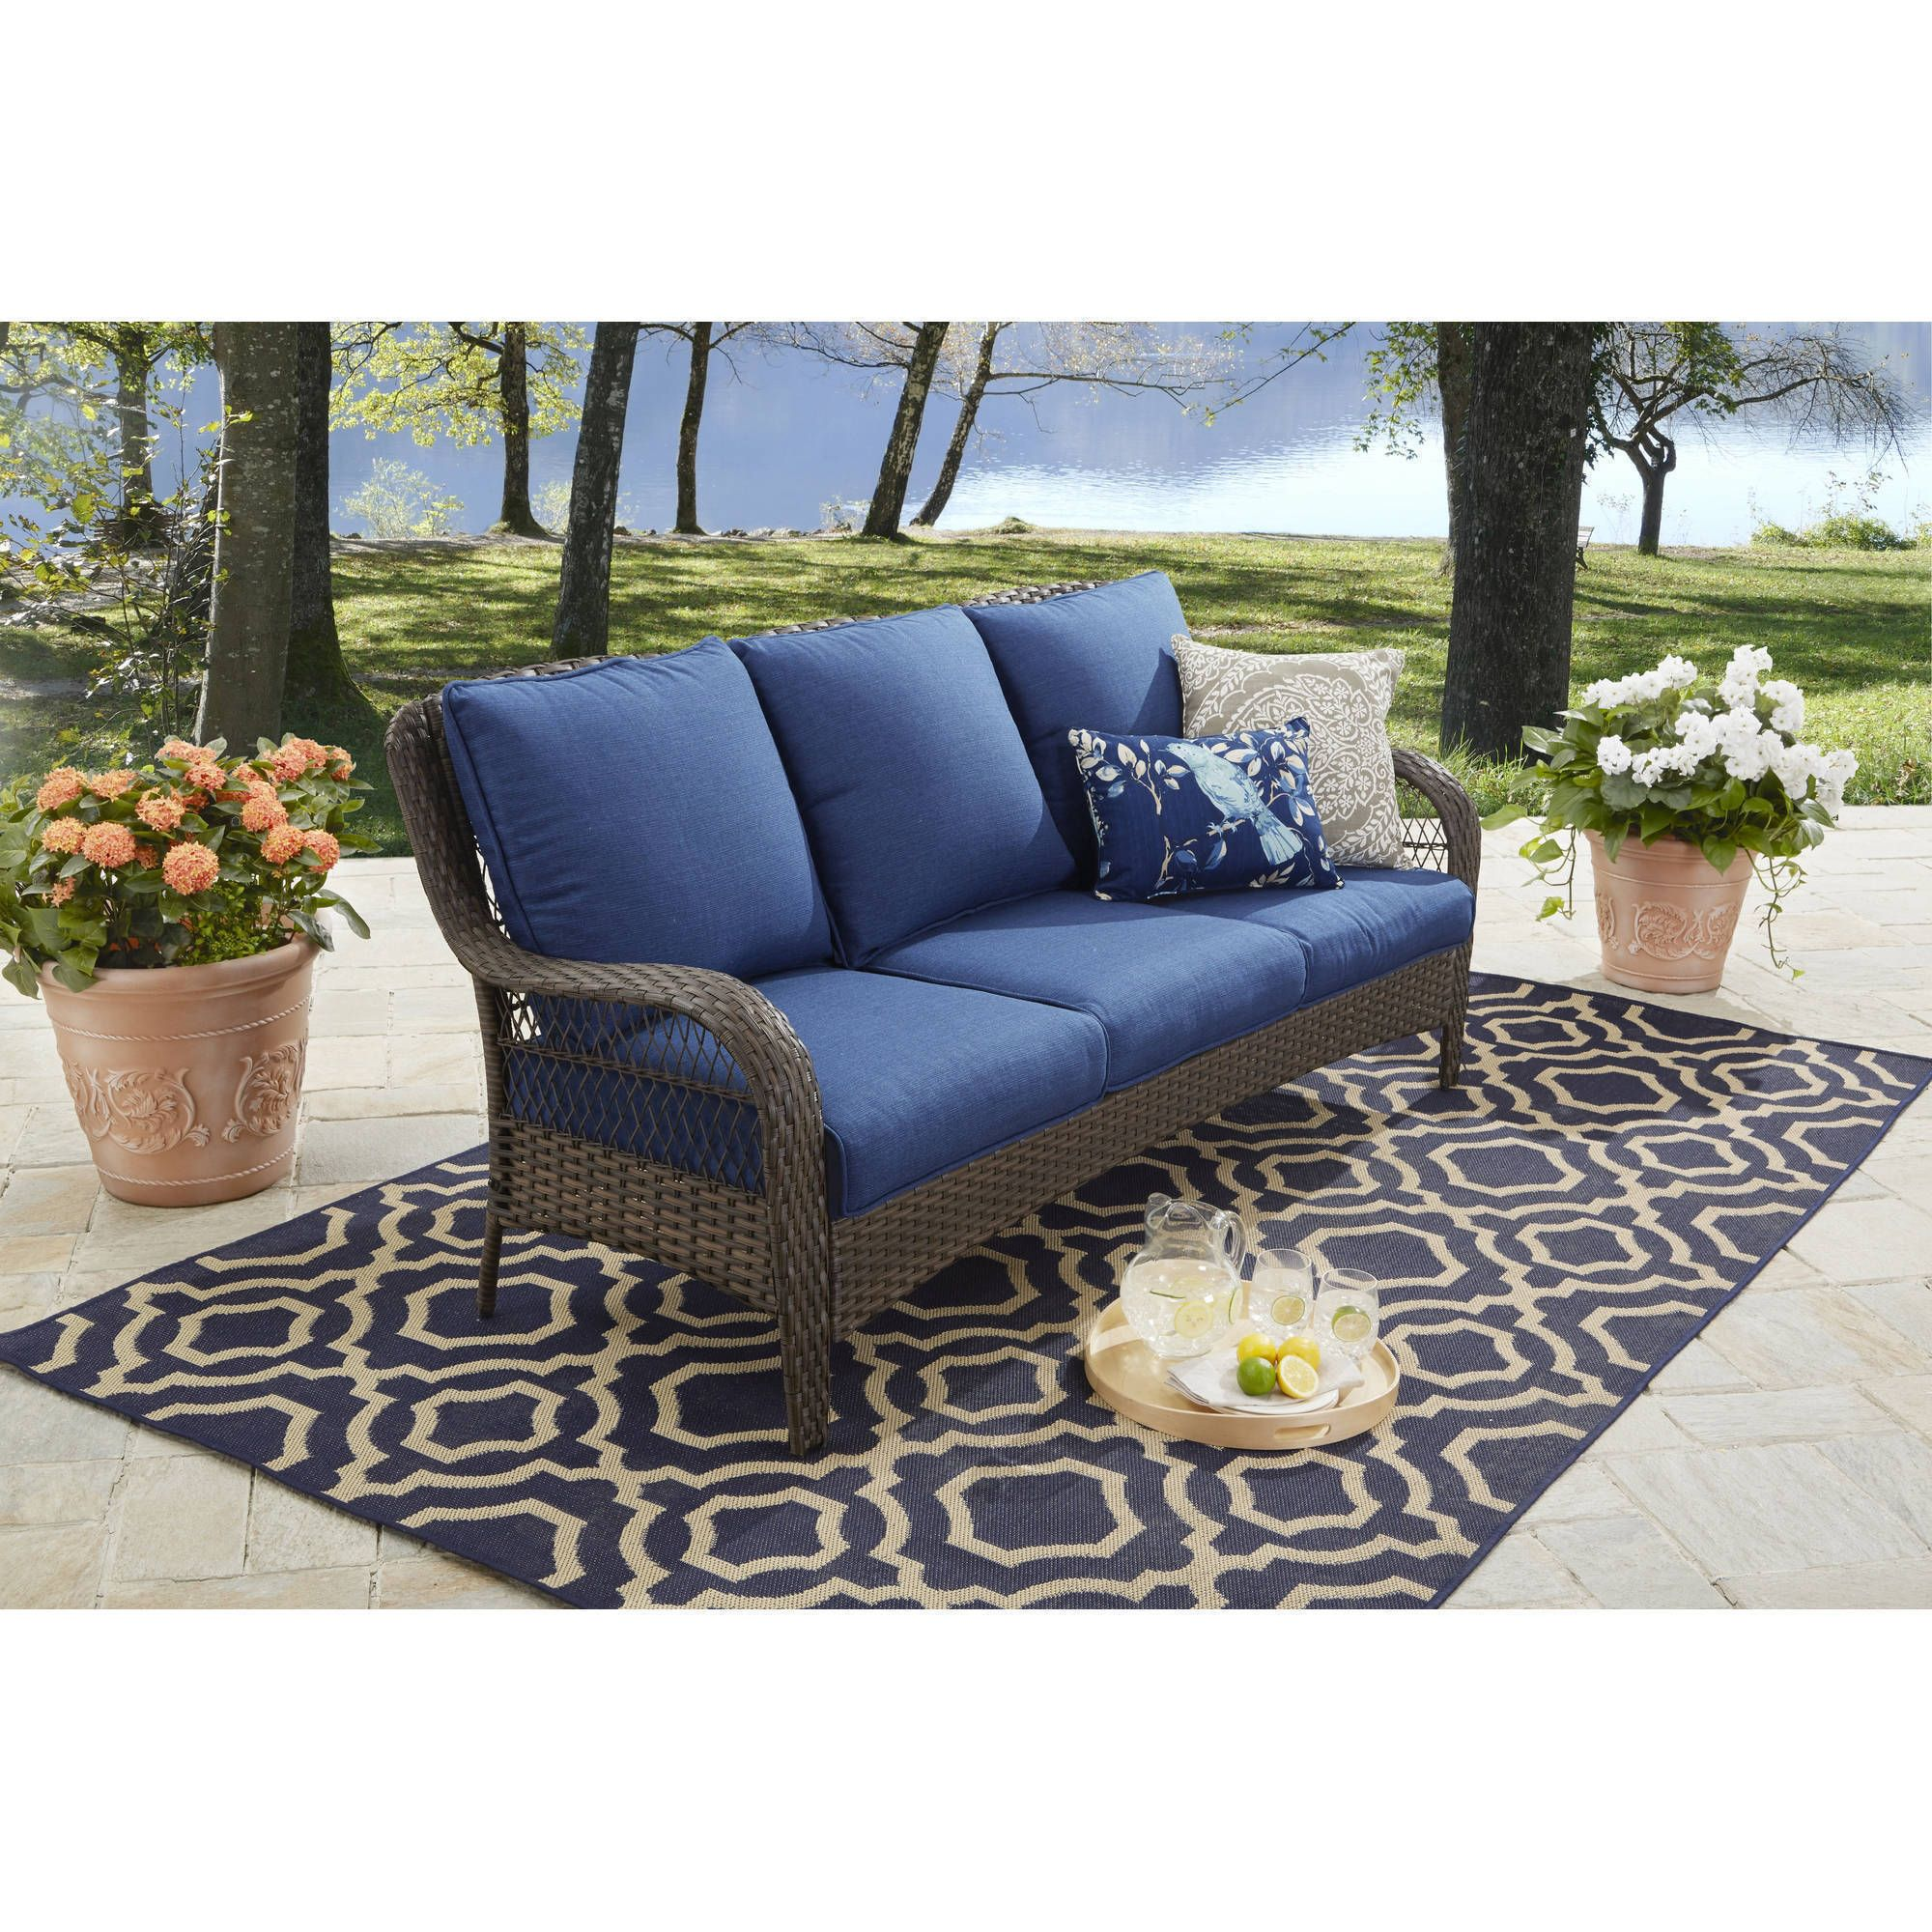 a04ef4a5d03440c99157574dc8f4dcdf - Better Homes And Gardens Colebrook Outdoor Glider Bench